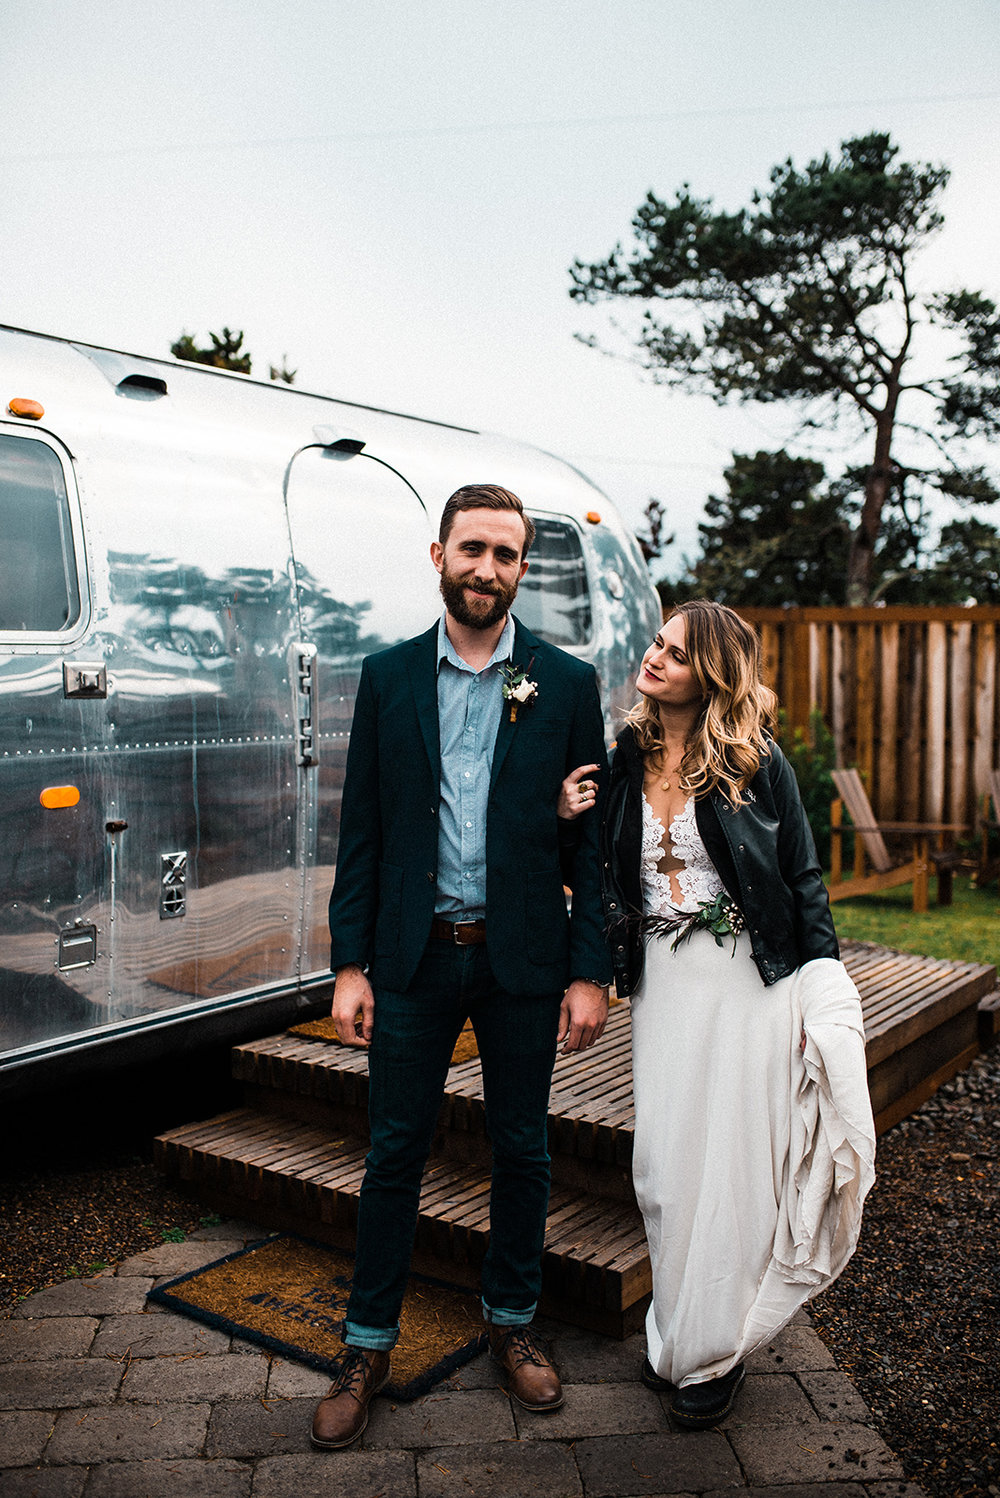 Oregon_Coast_Elopement_Wedding_The_Foxes_Photography_073.jpg